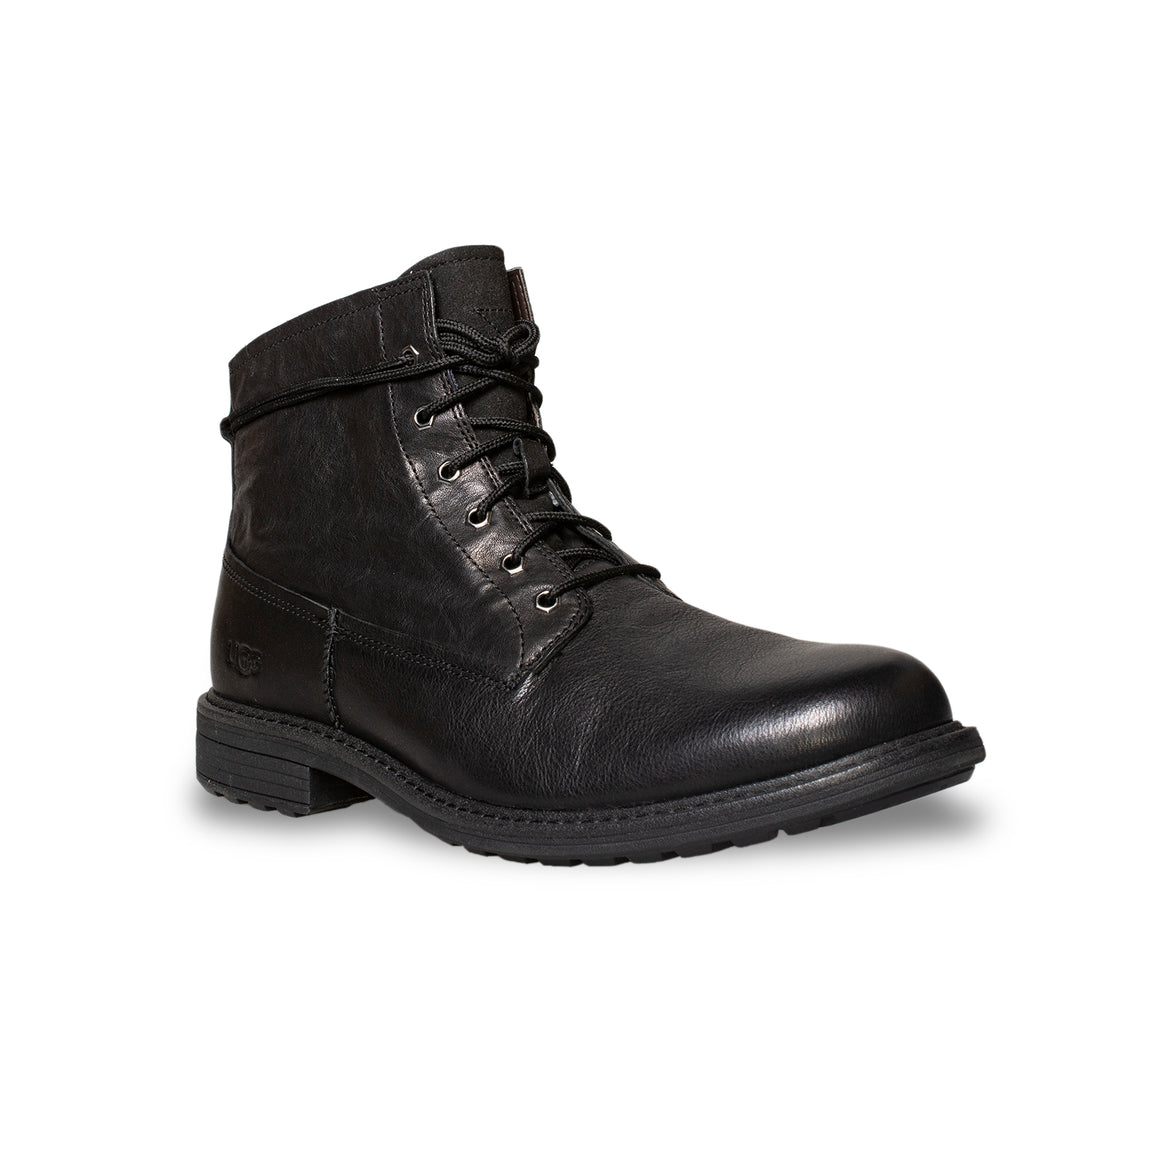 UGG Morrison Lace-up Black Boots - Men's